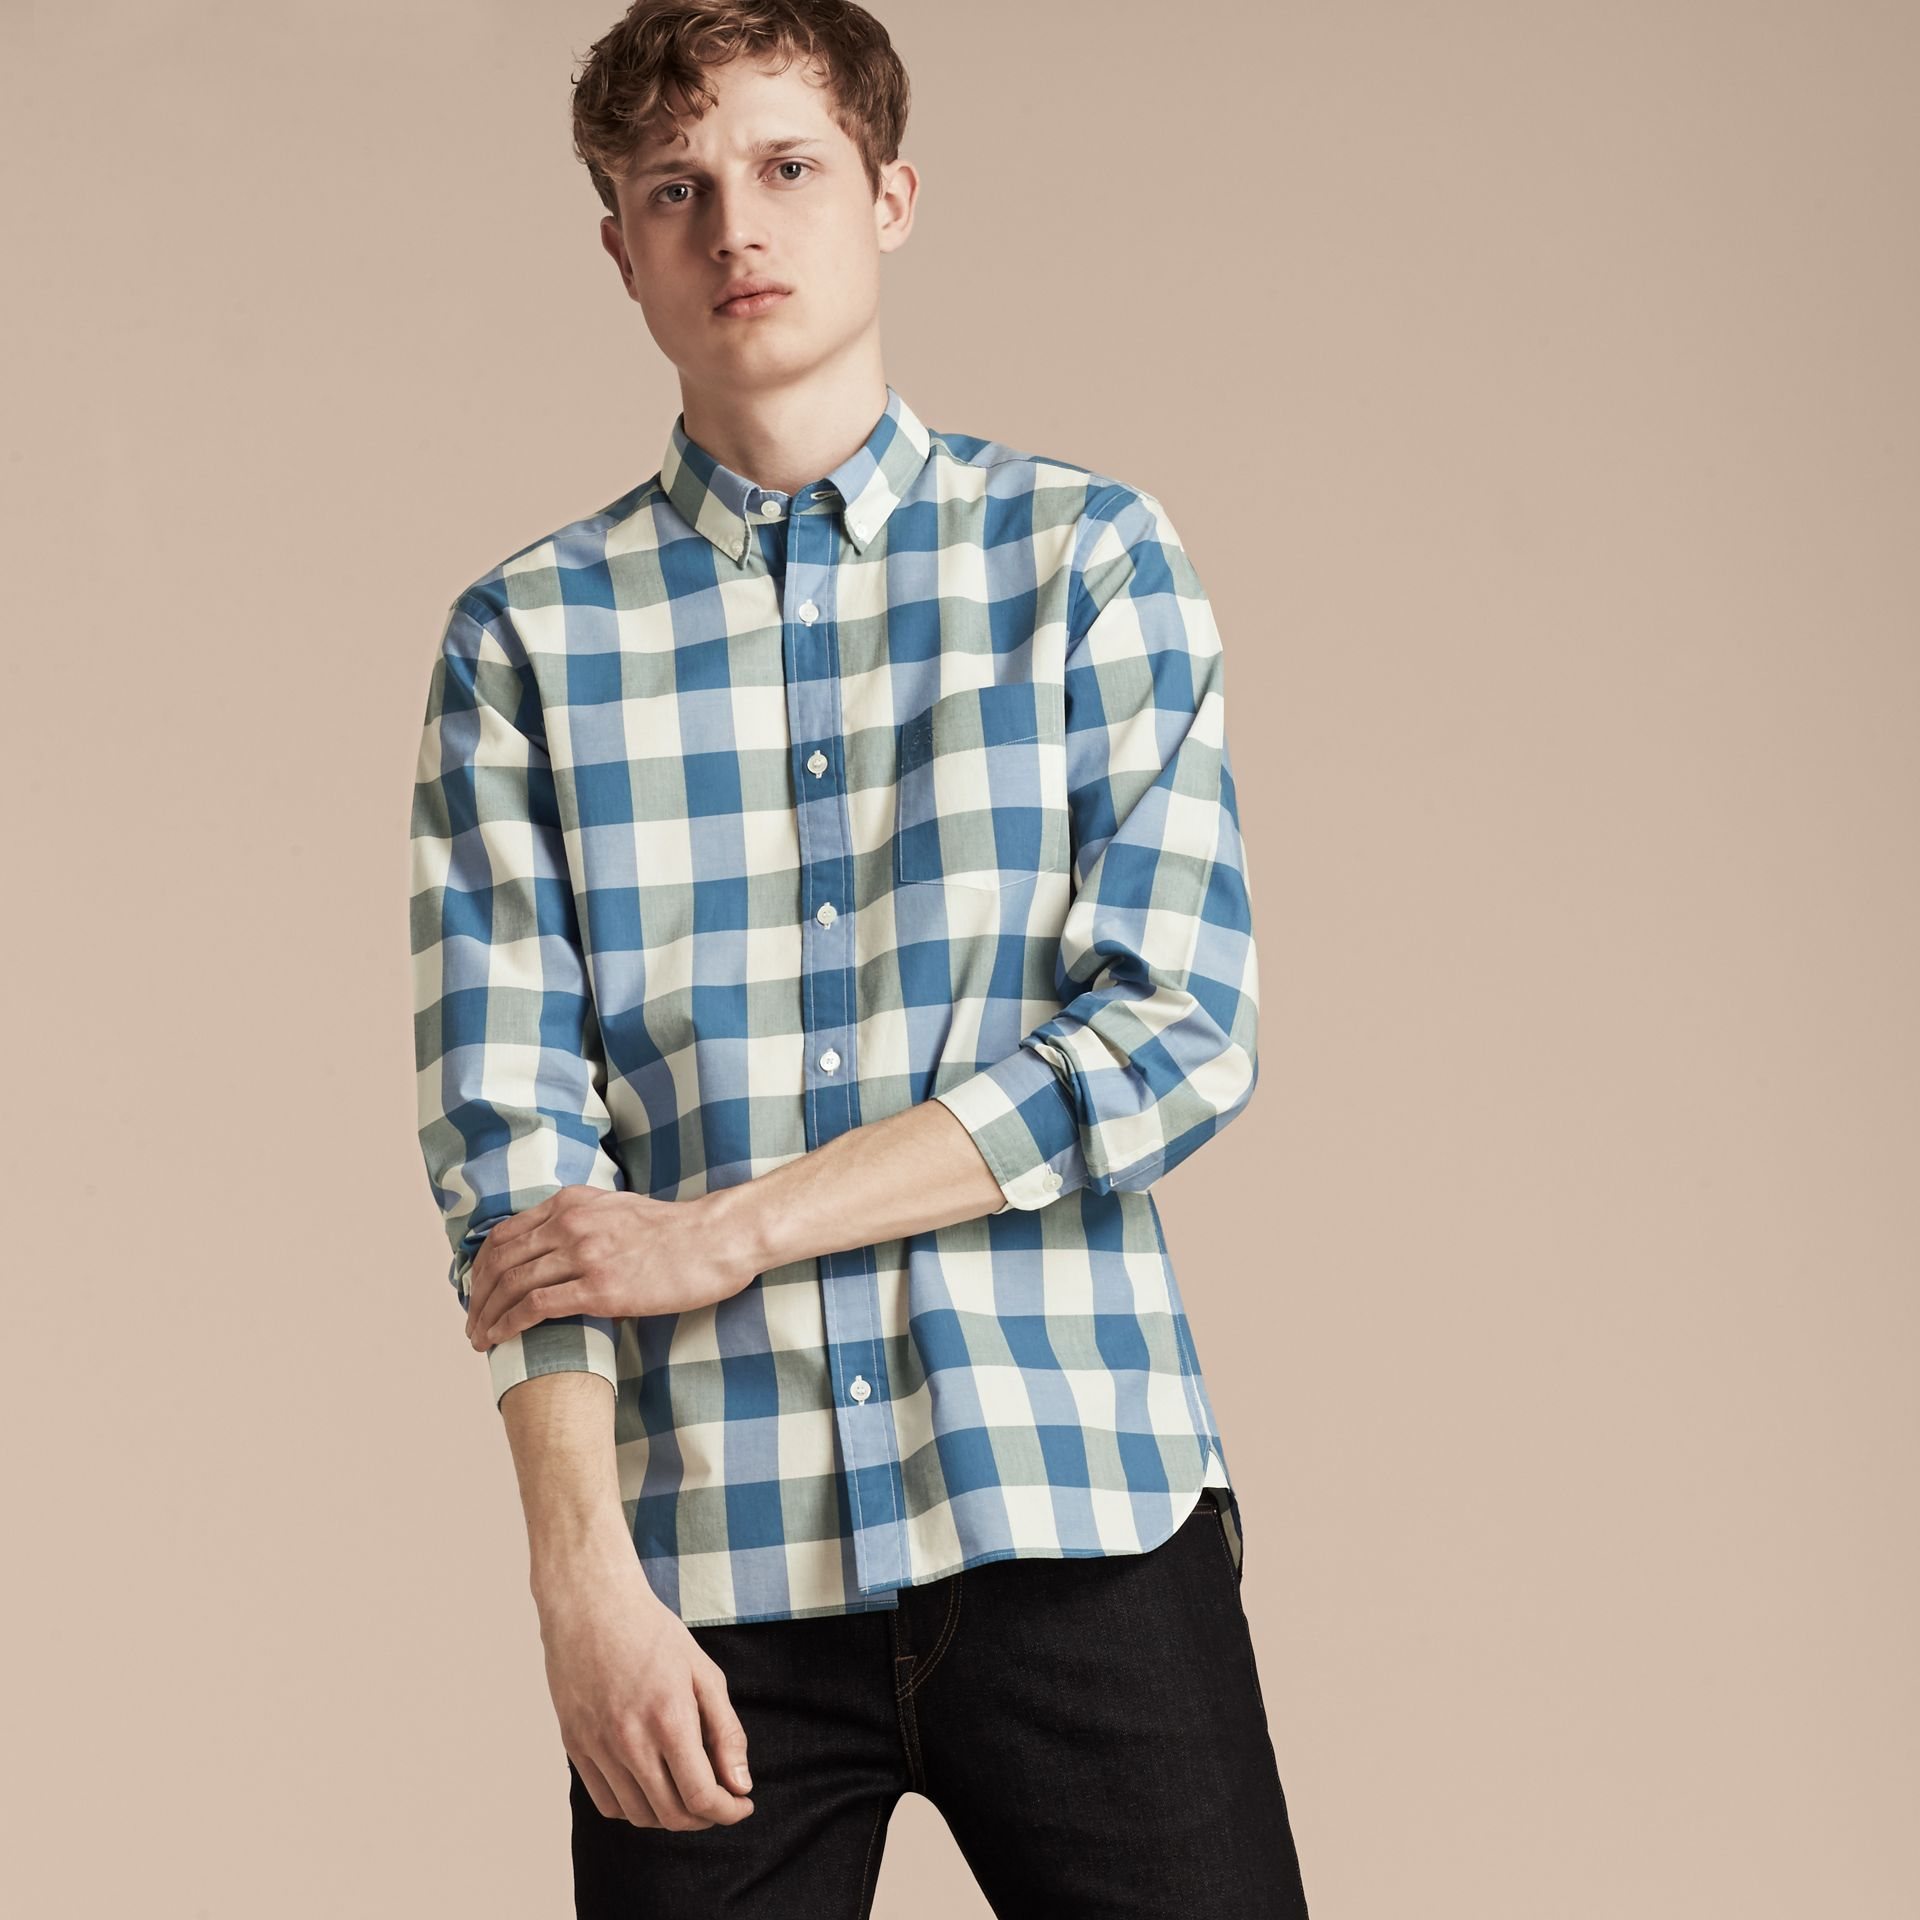 Blu ortensia intenso Camicia vichy in cotone con colletto button-down Blu Ortensia Intenso - immagine della galleria 6